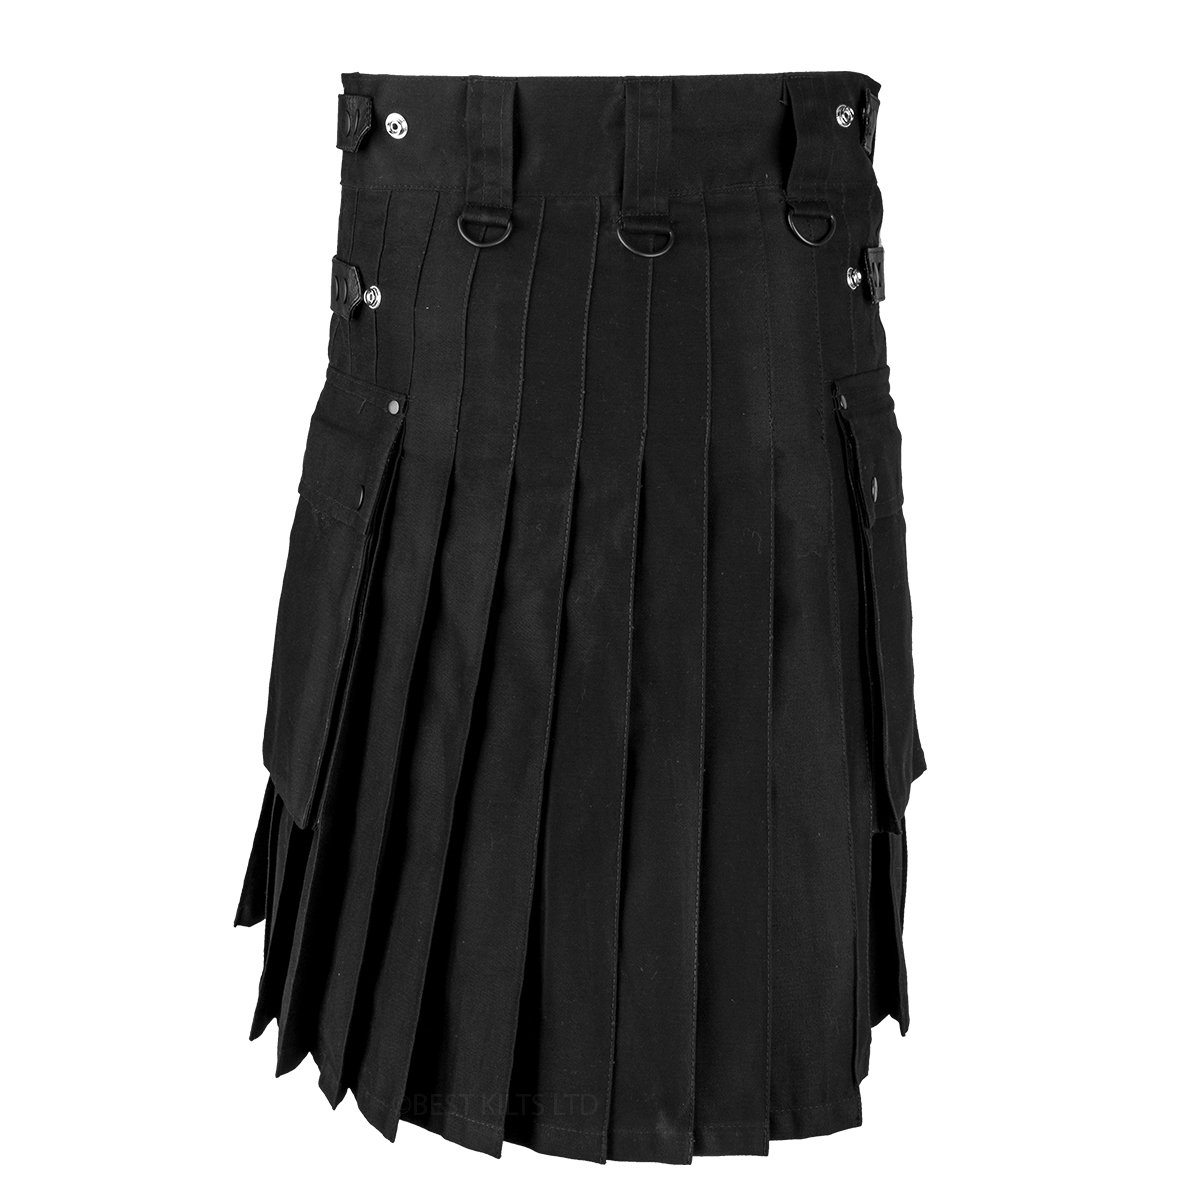 "Black Cotton And Leather Straps Utility Kilt For Men />Sizes Available 30/"" to 48/"""